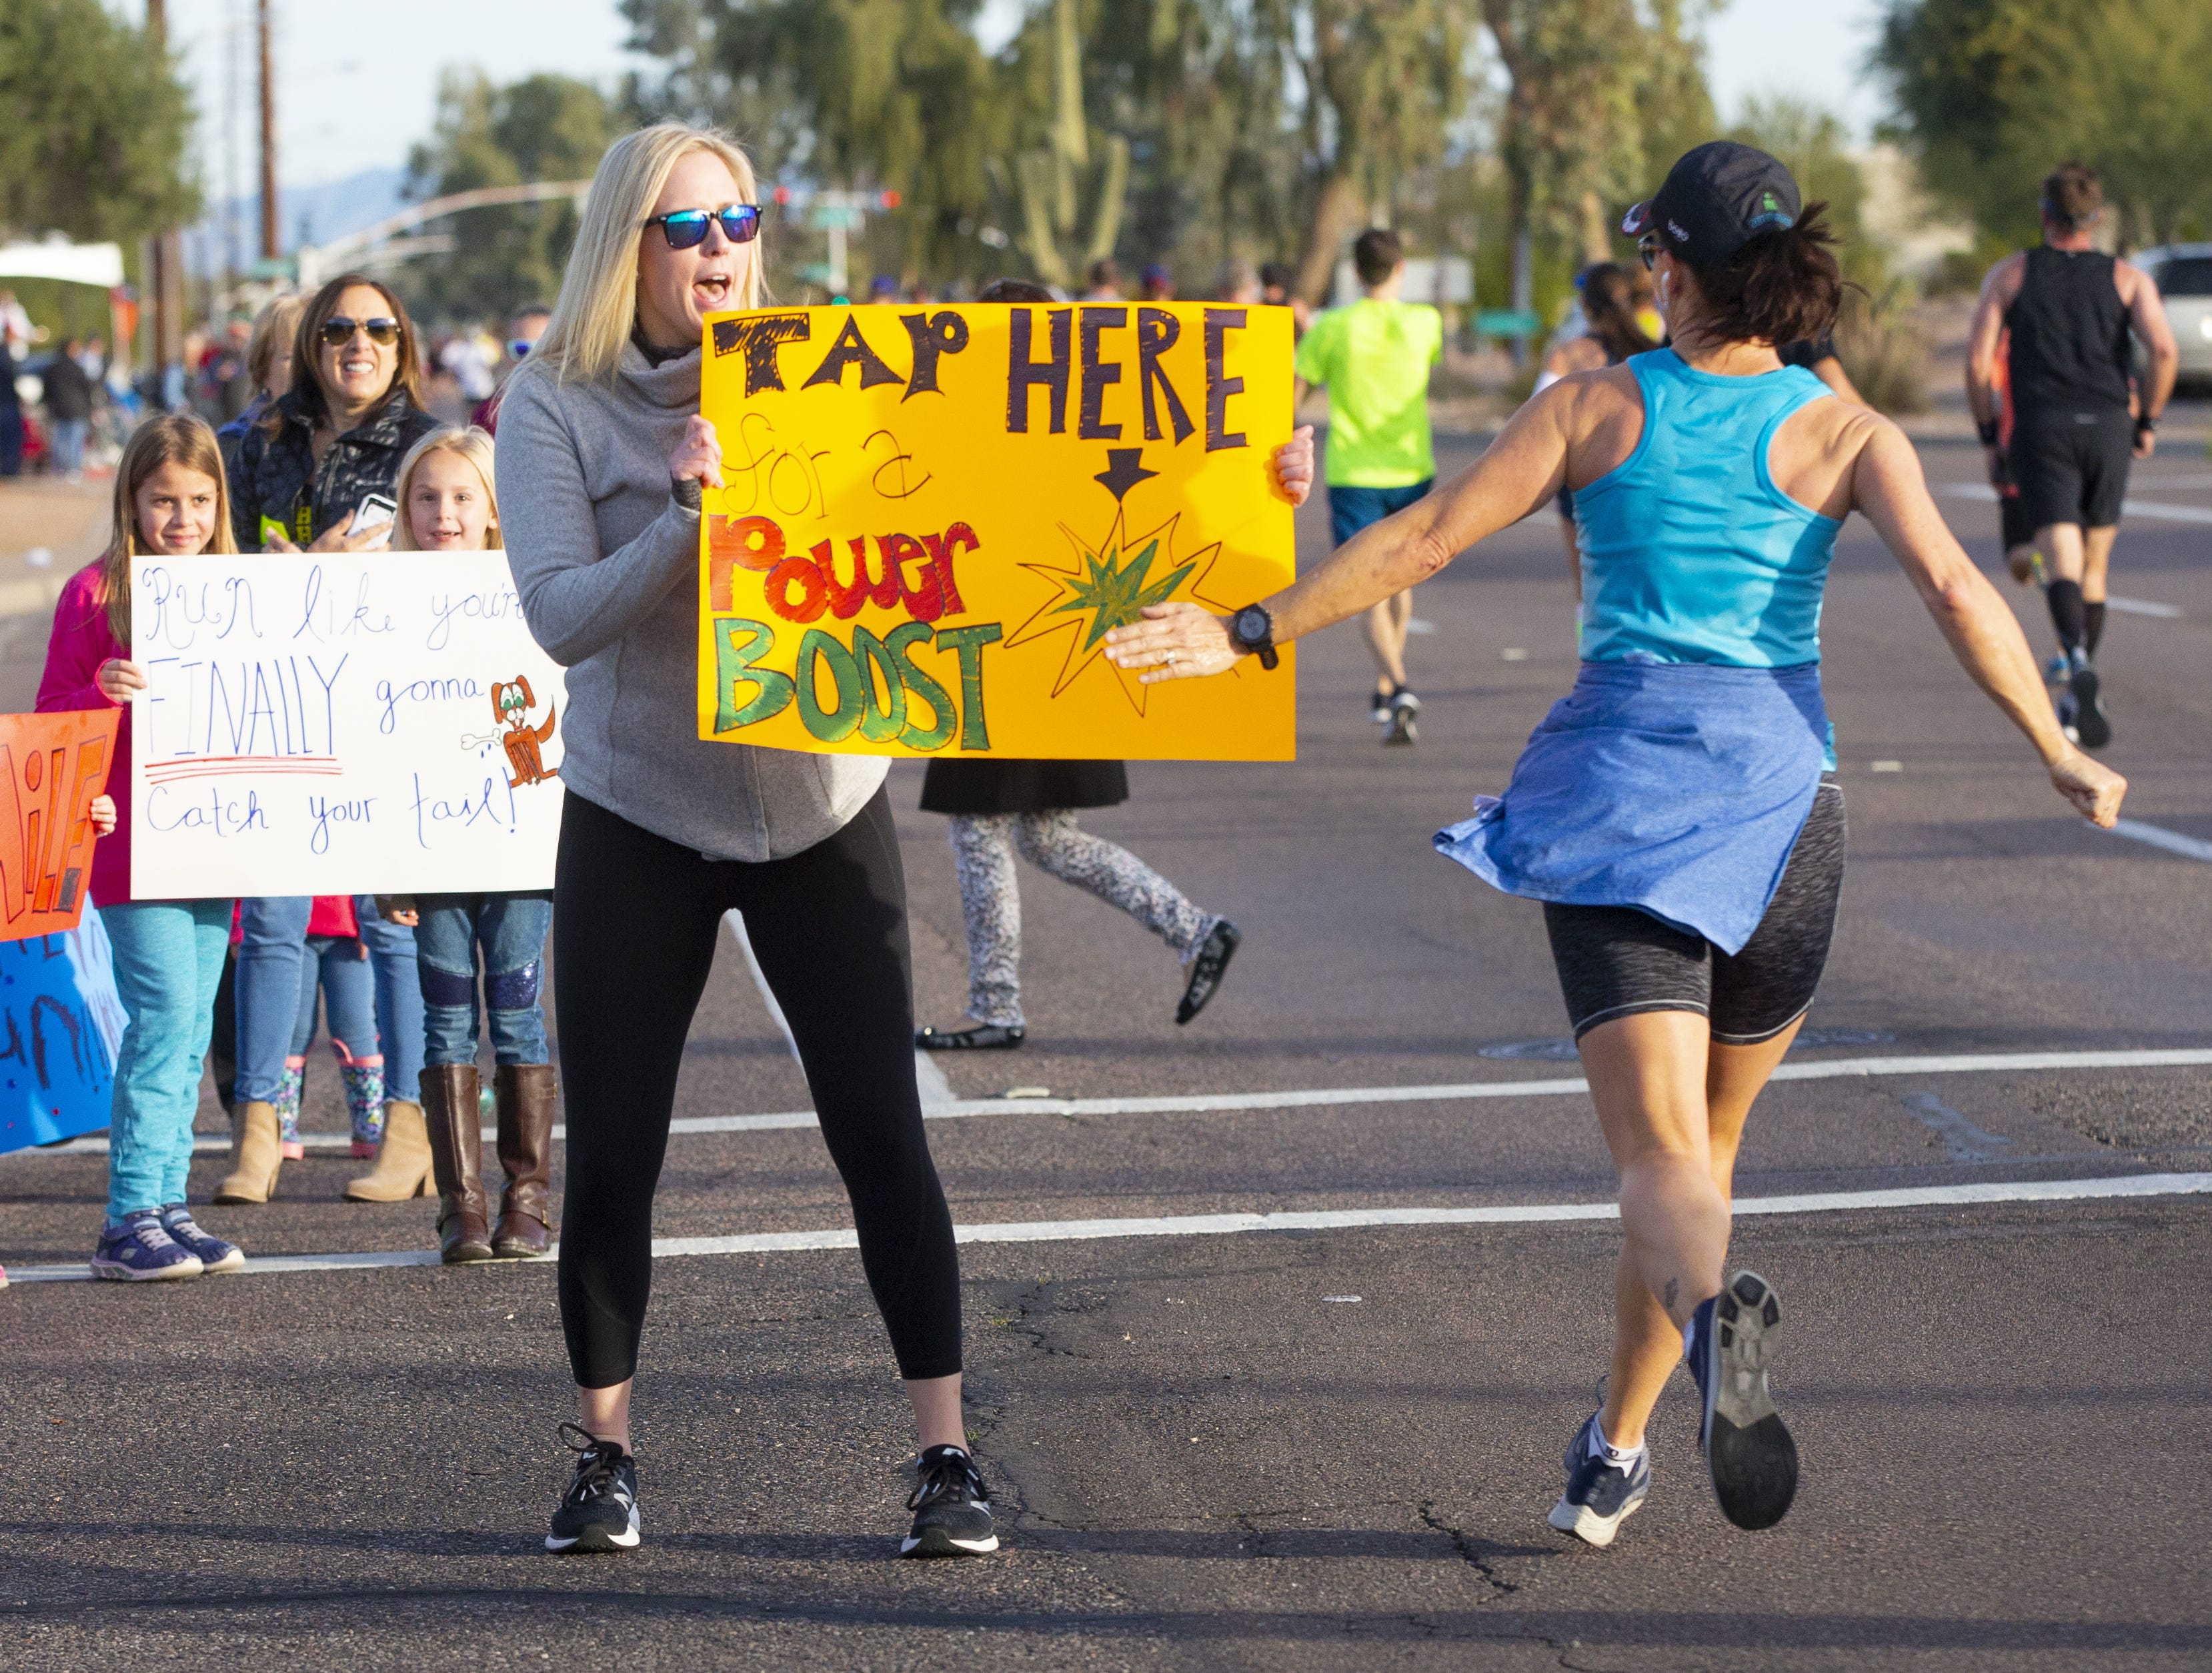 Shelby Mobley of Chandler offers the runners a boost during the Humana Rock 'N' Roll half-marathon on Jan. 20, 2019.